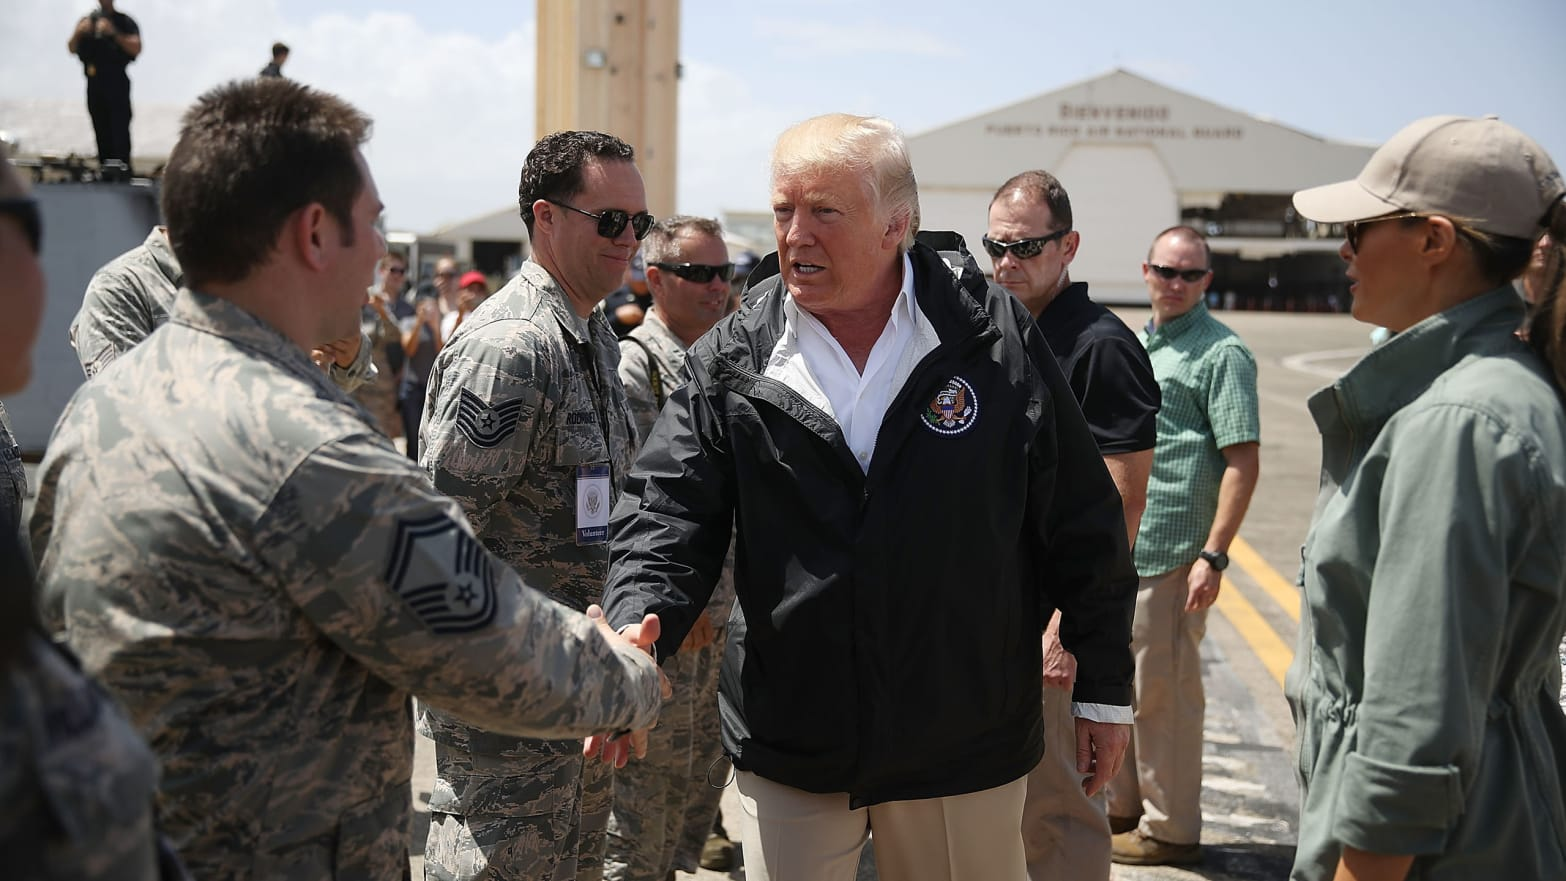 CAROLINA, PUERTO RICO - OCTOBER 03: US President Donald Trump greets U.S Air Force airmen as he arrives at the Muniz Air National Guard Base as he makes a visit after Hurricane Maria hit the island on October 3, 2017 in Carolina, Puerto Rico.